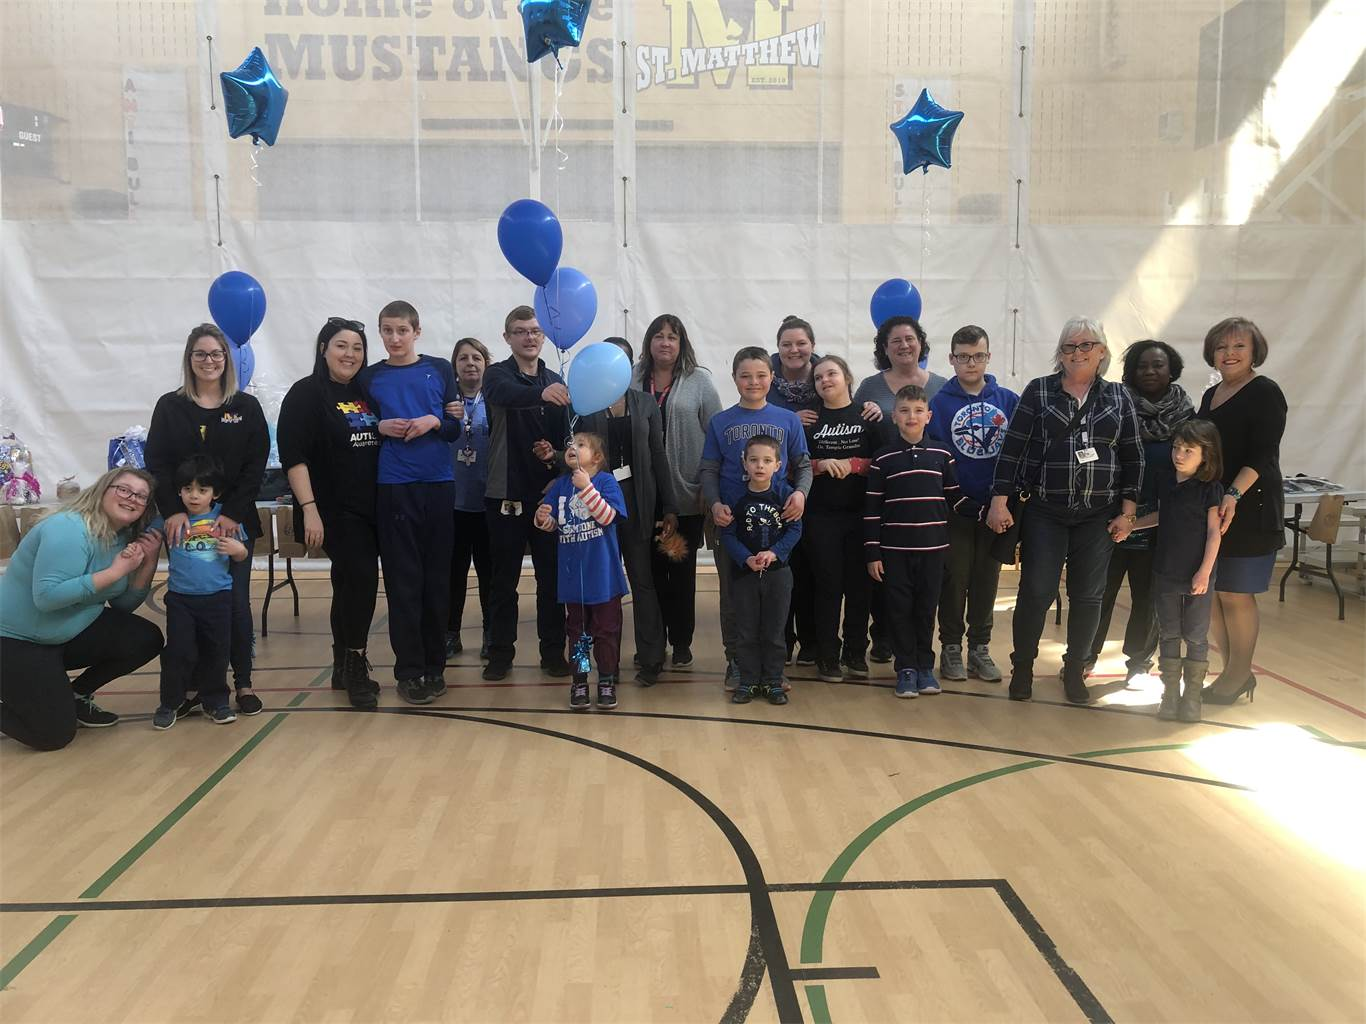 St. Matthew supports children with autism